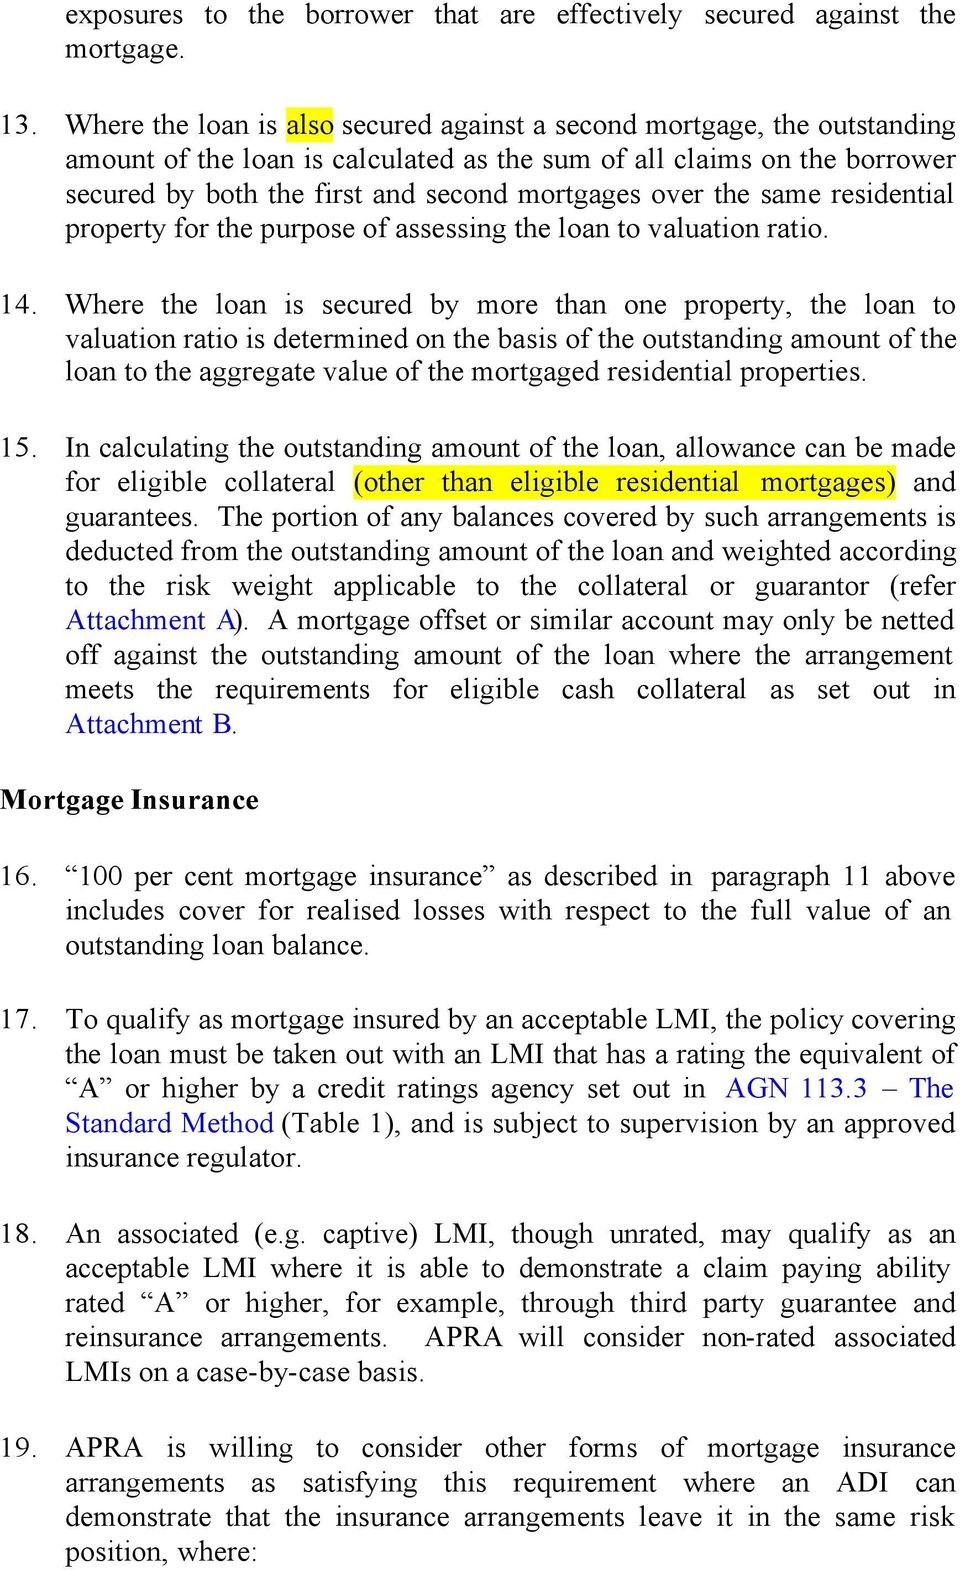 the same residential property for the purpose of assessing the loan to valuation ratio. 14.